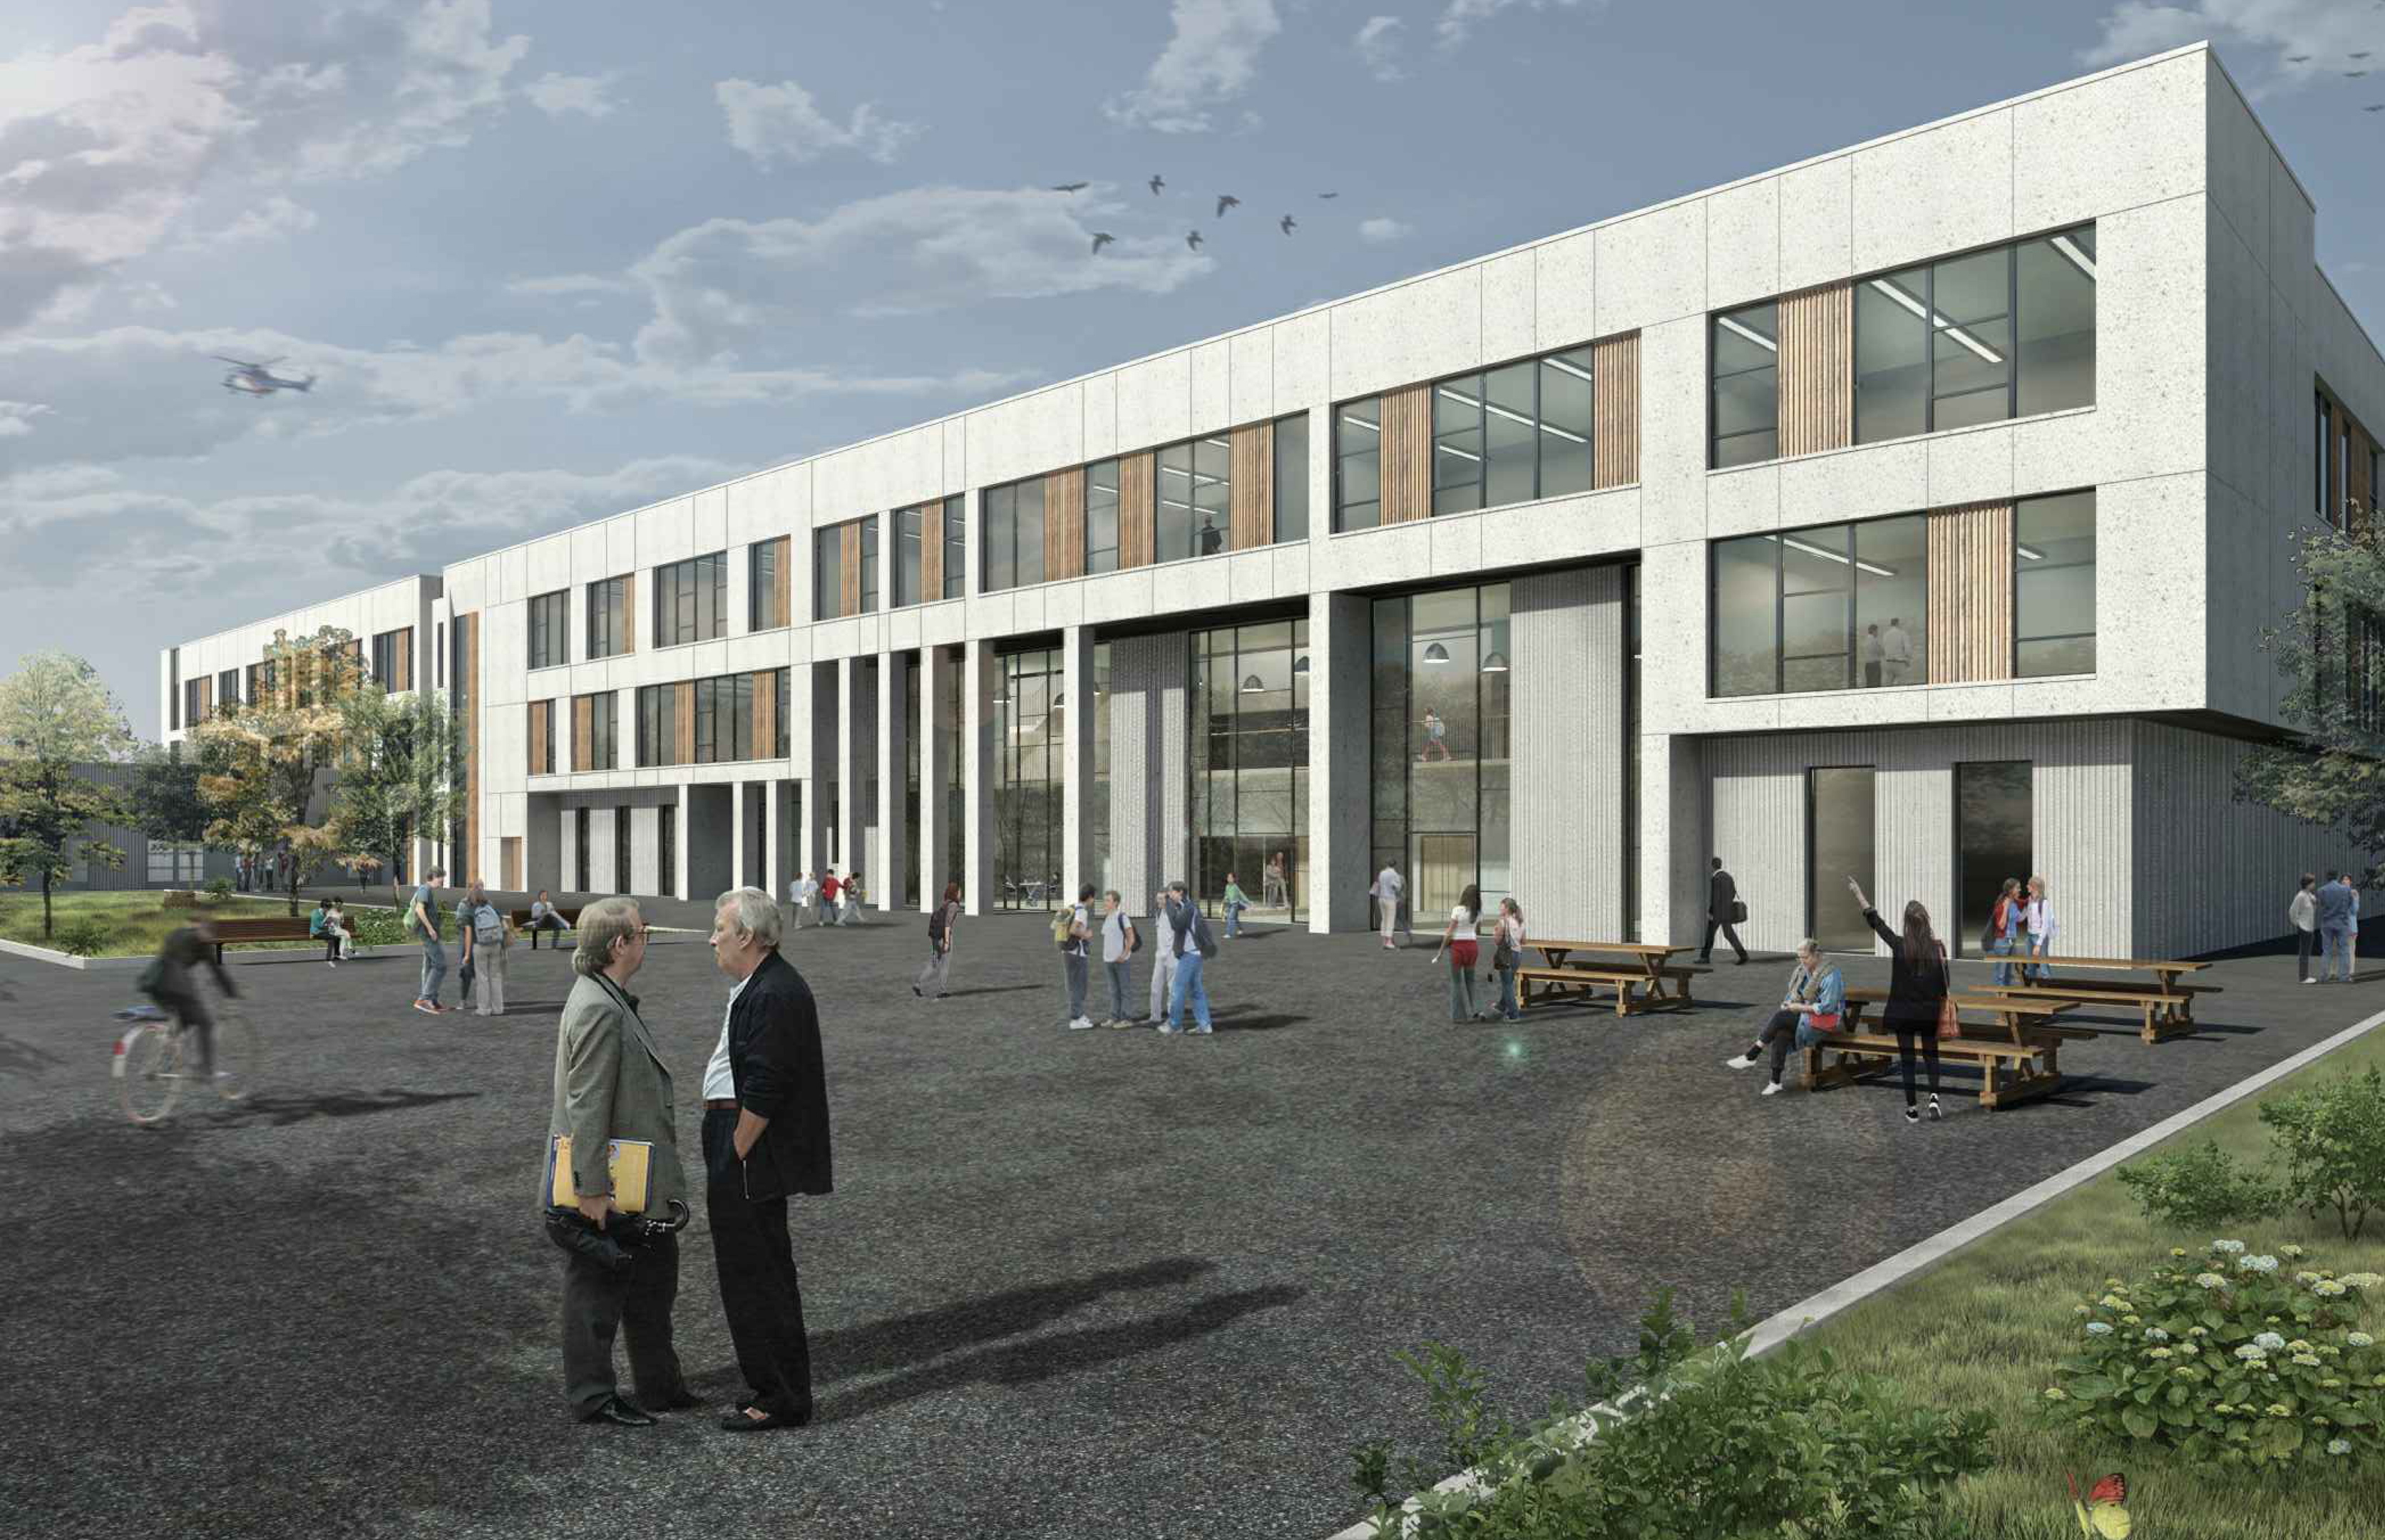 An artist's impression of the new South of City secondary school.